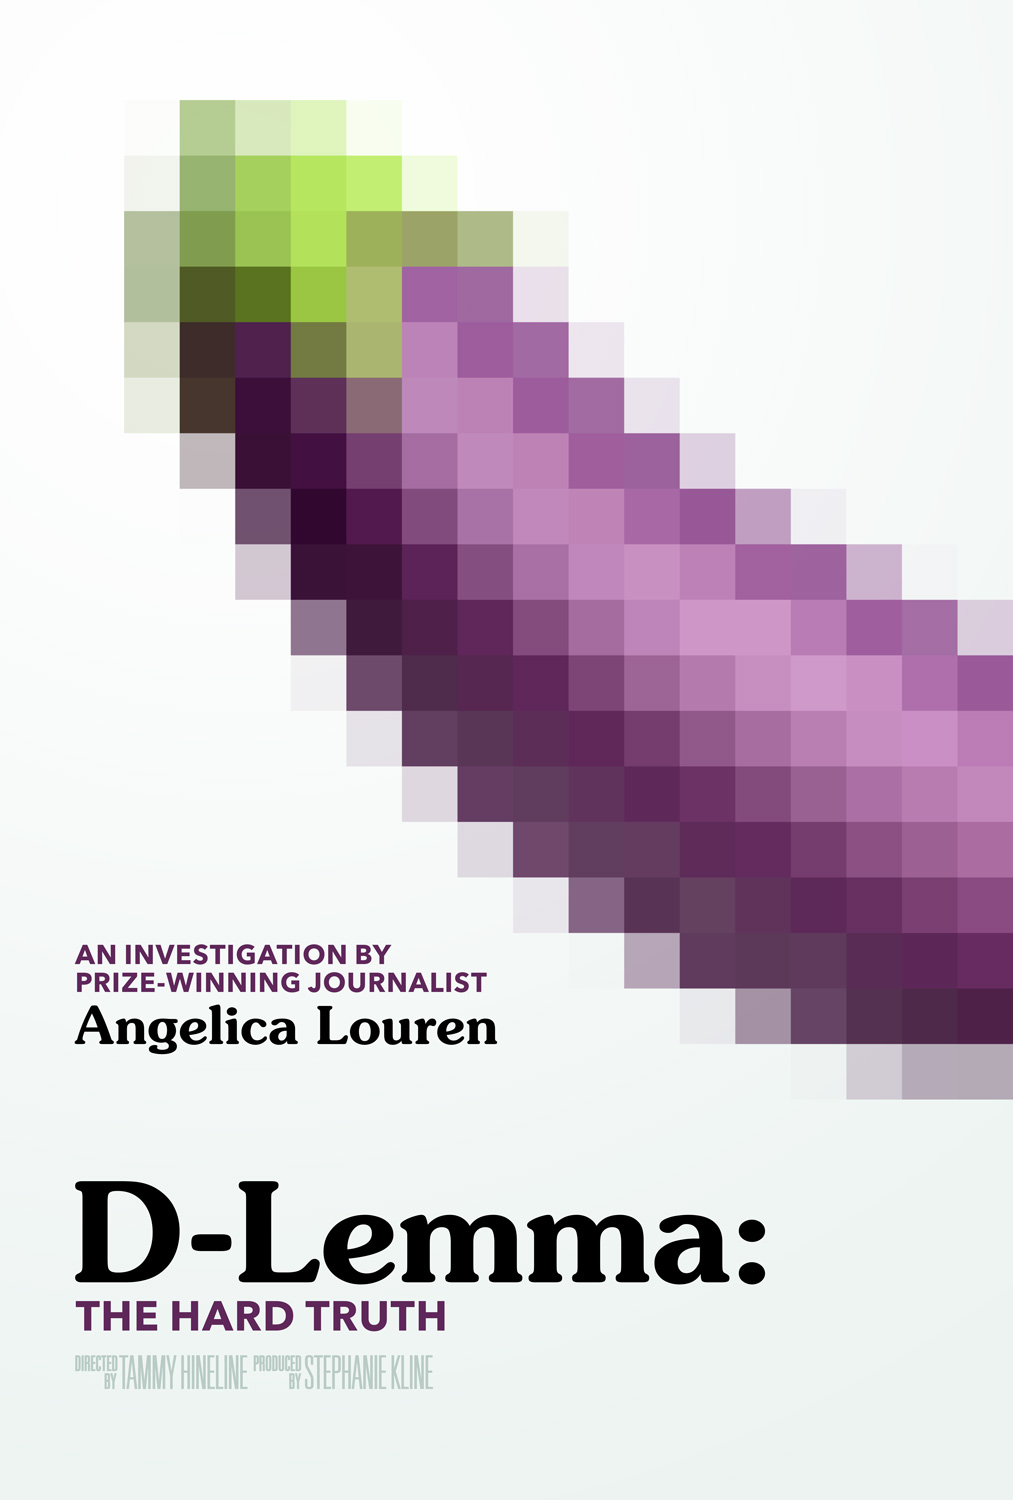 "- D-Lemma: The Hard TruthHave you ever wondered not just WHAT a penis, but WHY a penis? What are they even good for? Prize-winning pretend-journalist Angelica Louren sets out to solve our generation's greatest question in this eye-opening investigative film interviewing the top professionals on men's health: women.I wrote D-Lemma after getting fed up with common misconceptions about simple women's anatomy. My breasts aren't perfectly symmetrical and the size of my labia has nothing to do with how promiscuous I am. Having sex with 100 men is not going to make my vagina any different than having sex 100 times with one man. It's not memory foam. So I thought, ""What if the roles were reversed?"" and sat down to write D-Lemma: The Hard Truth.My goal for this film is that women (okay, men too) get a real laugh out of the reversal of this scenario - because we've all had a man in our life that thinks we can produce milk without being pregnant or believes that we pee out of our vaginas. We don't. Still more women suffer real physical harm and neglect from actual medical professionals who hold outdated beliefs about us. It's frustrating - but when we turn that frustration into comedy we can all have a good laugh about it. Maybe.But I can't make this film without your help. After all - it's uterUS, not uterME.-Tammy Hineline (Director)"